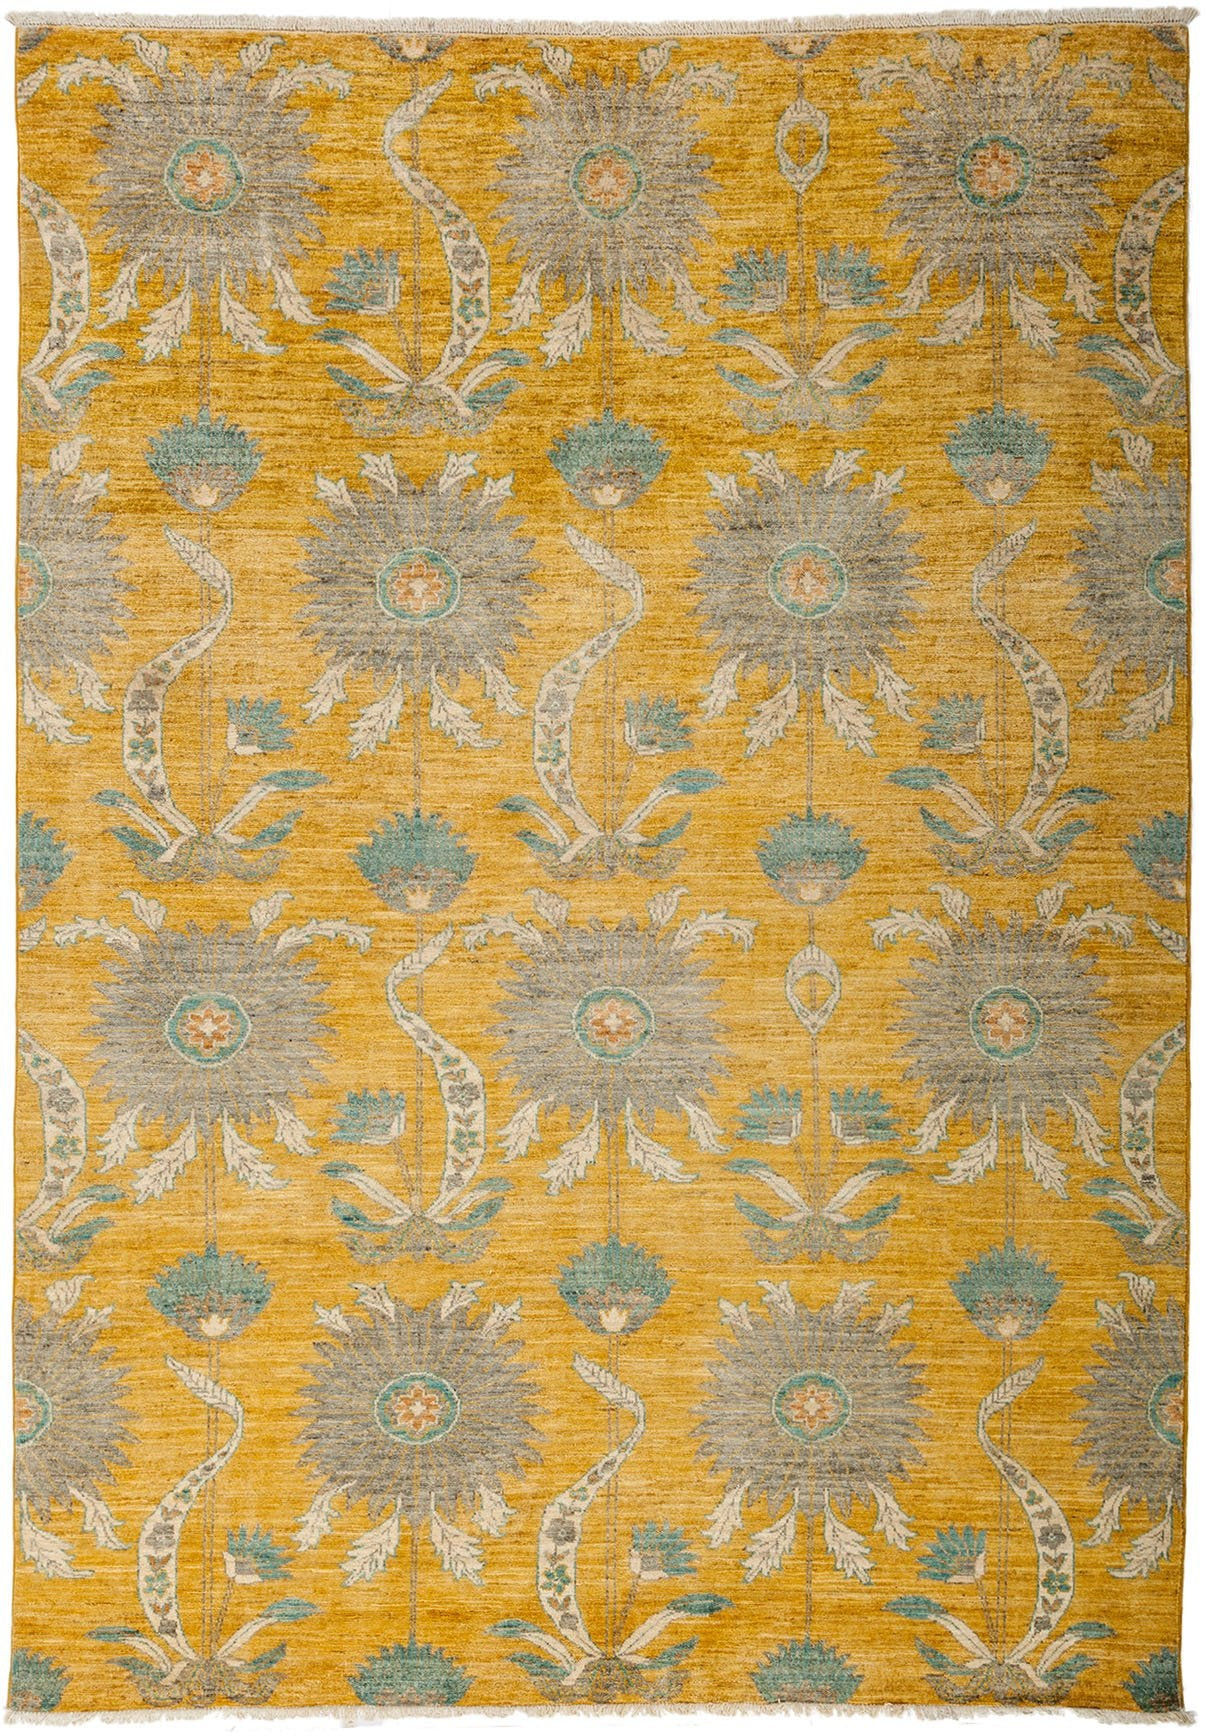 lowes area simple beige grey cheap rug yellow braided kitchen contemporary white near pale teal and navy best brown solid on marvelous patio large me bright rugs light blue